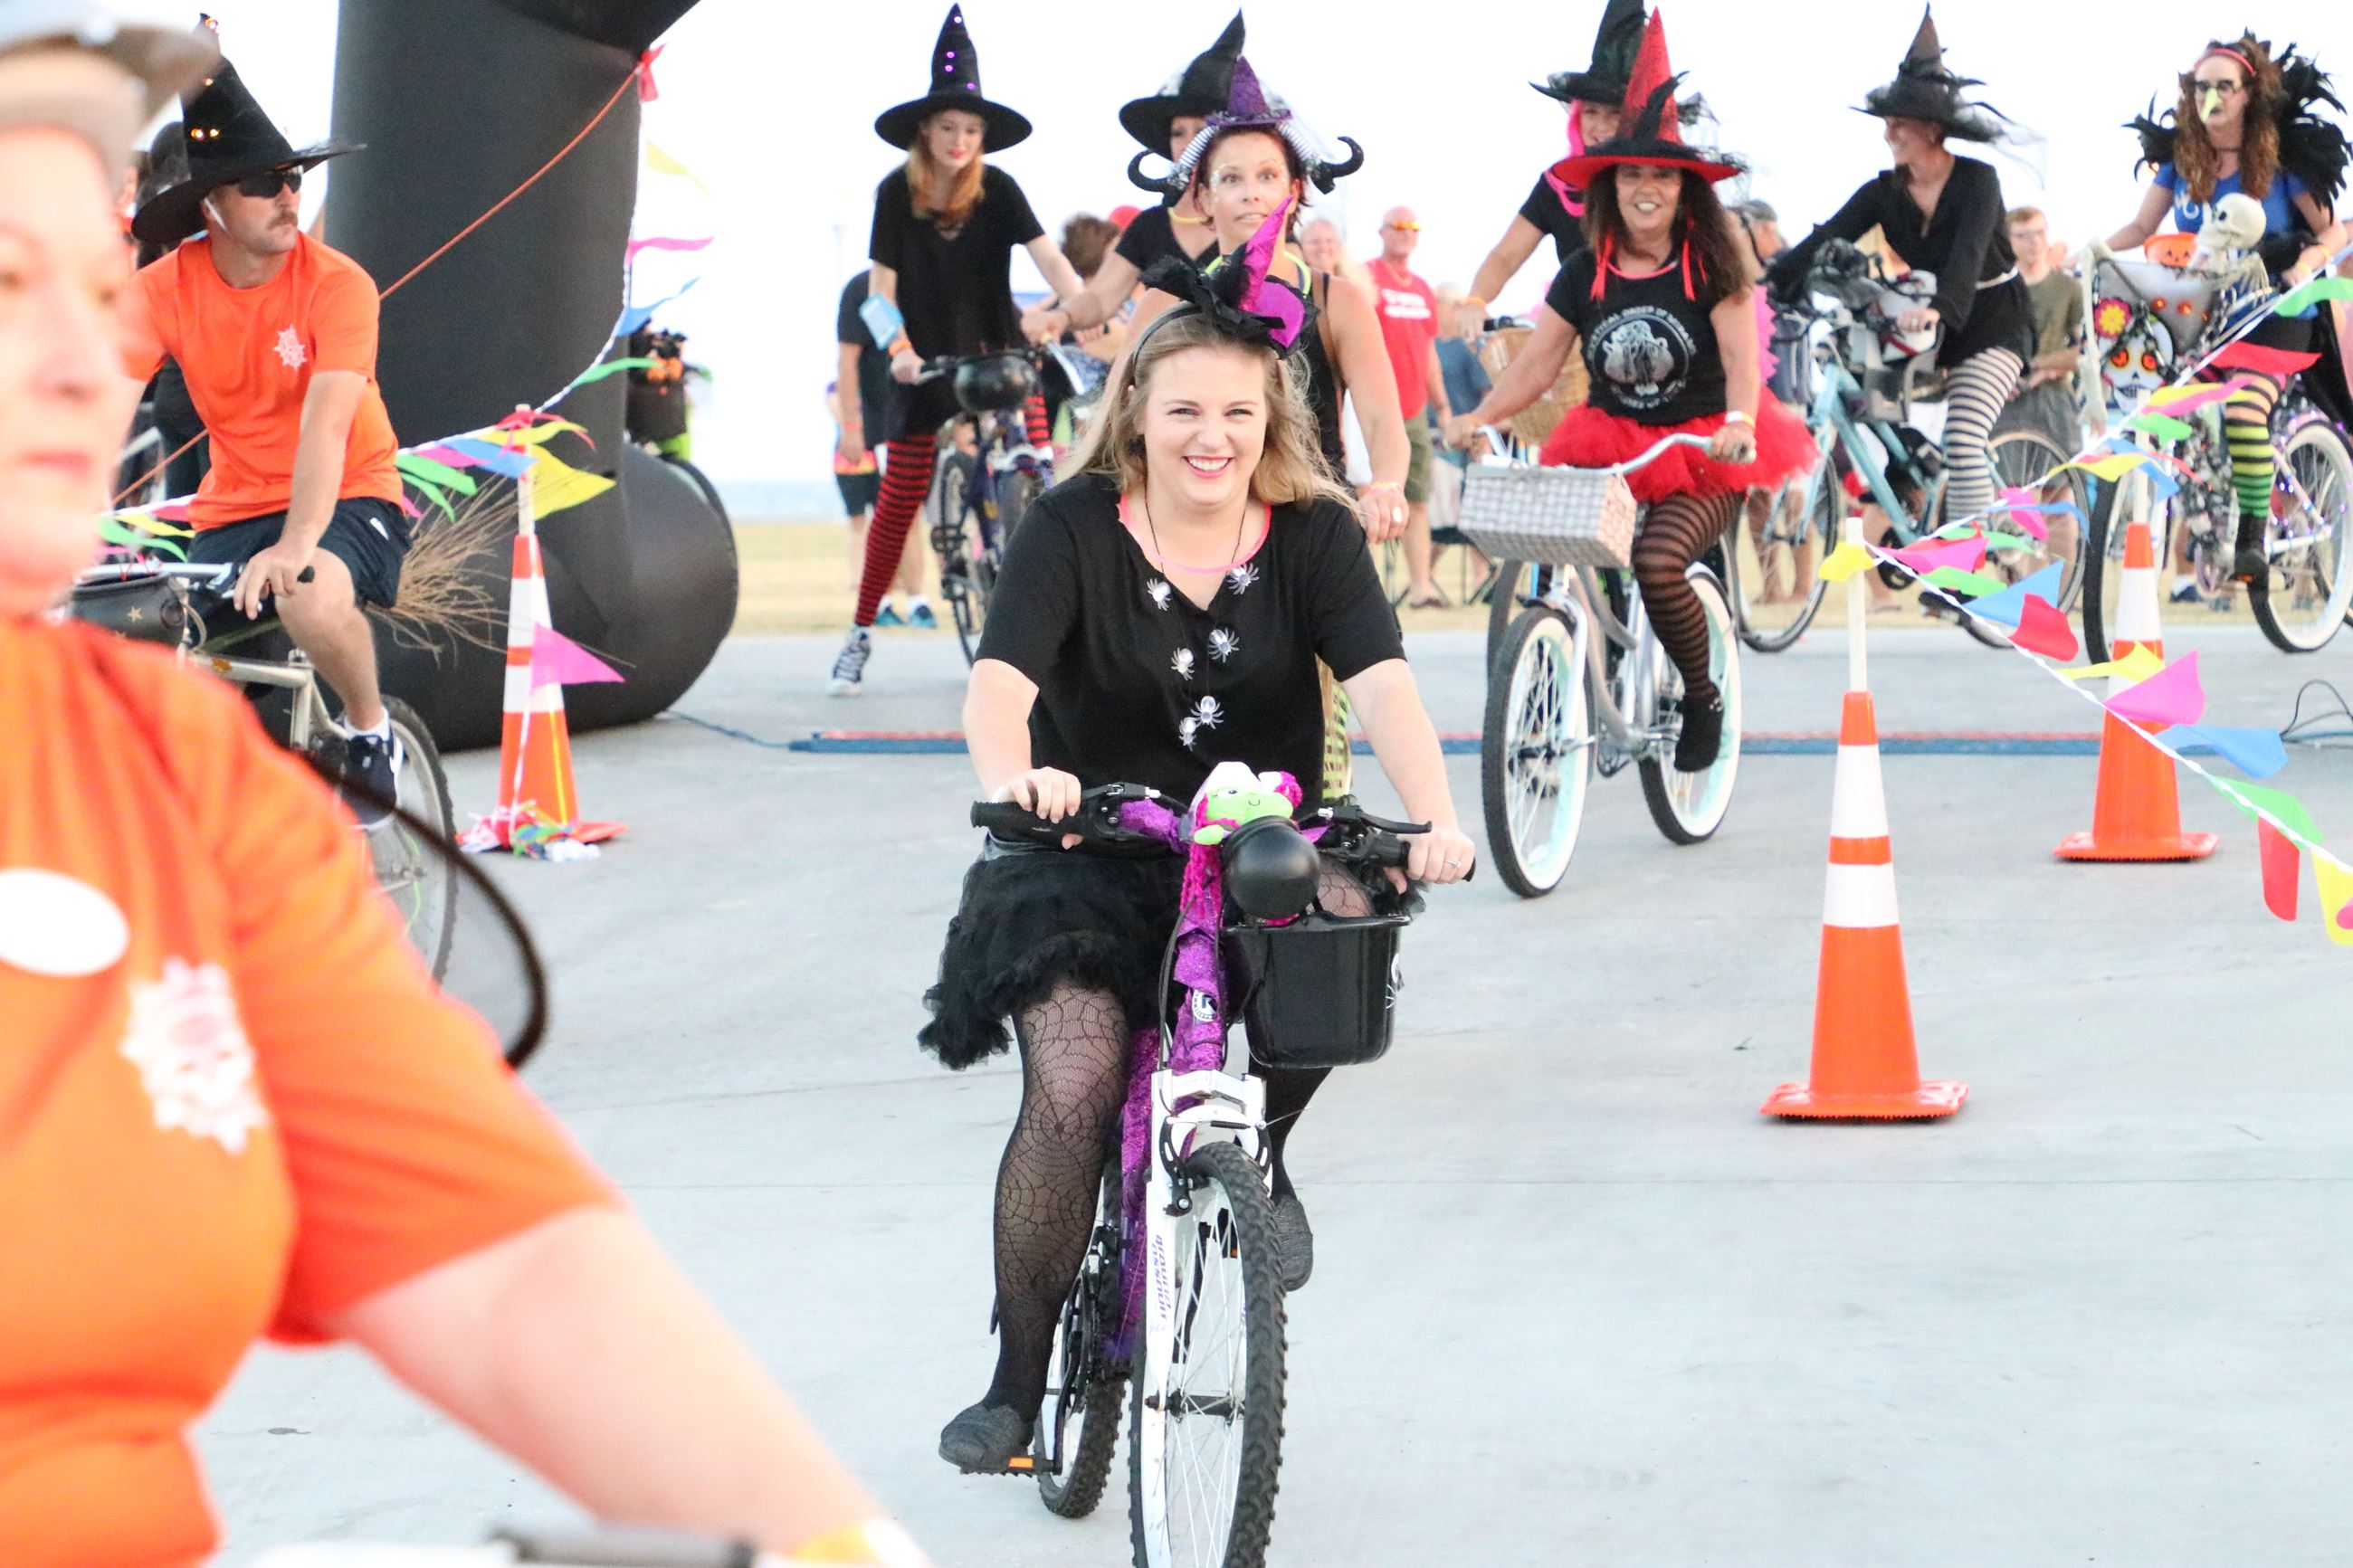 people dressed as witches riding bicycles